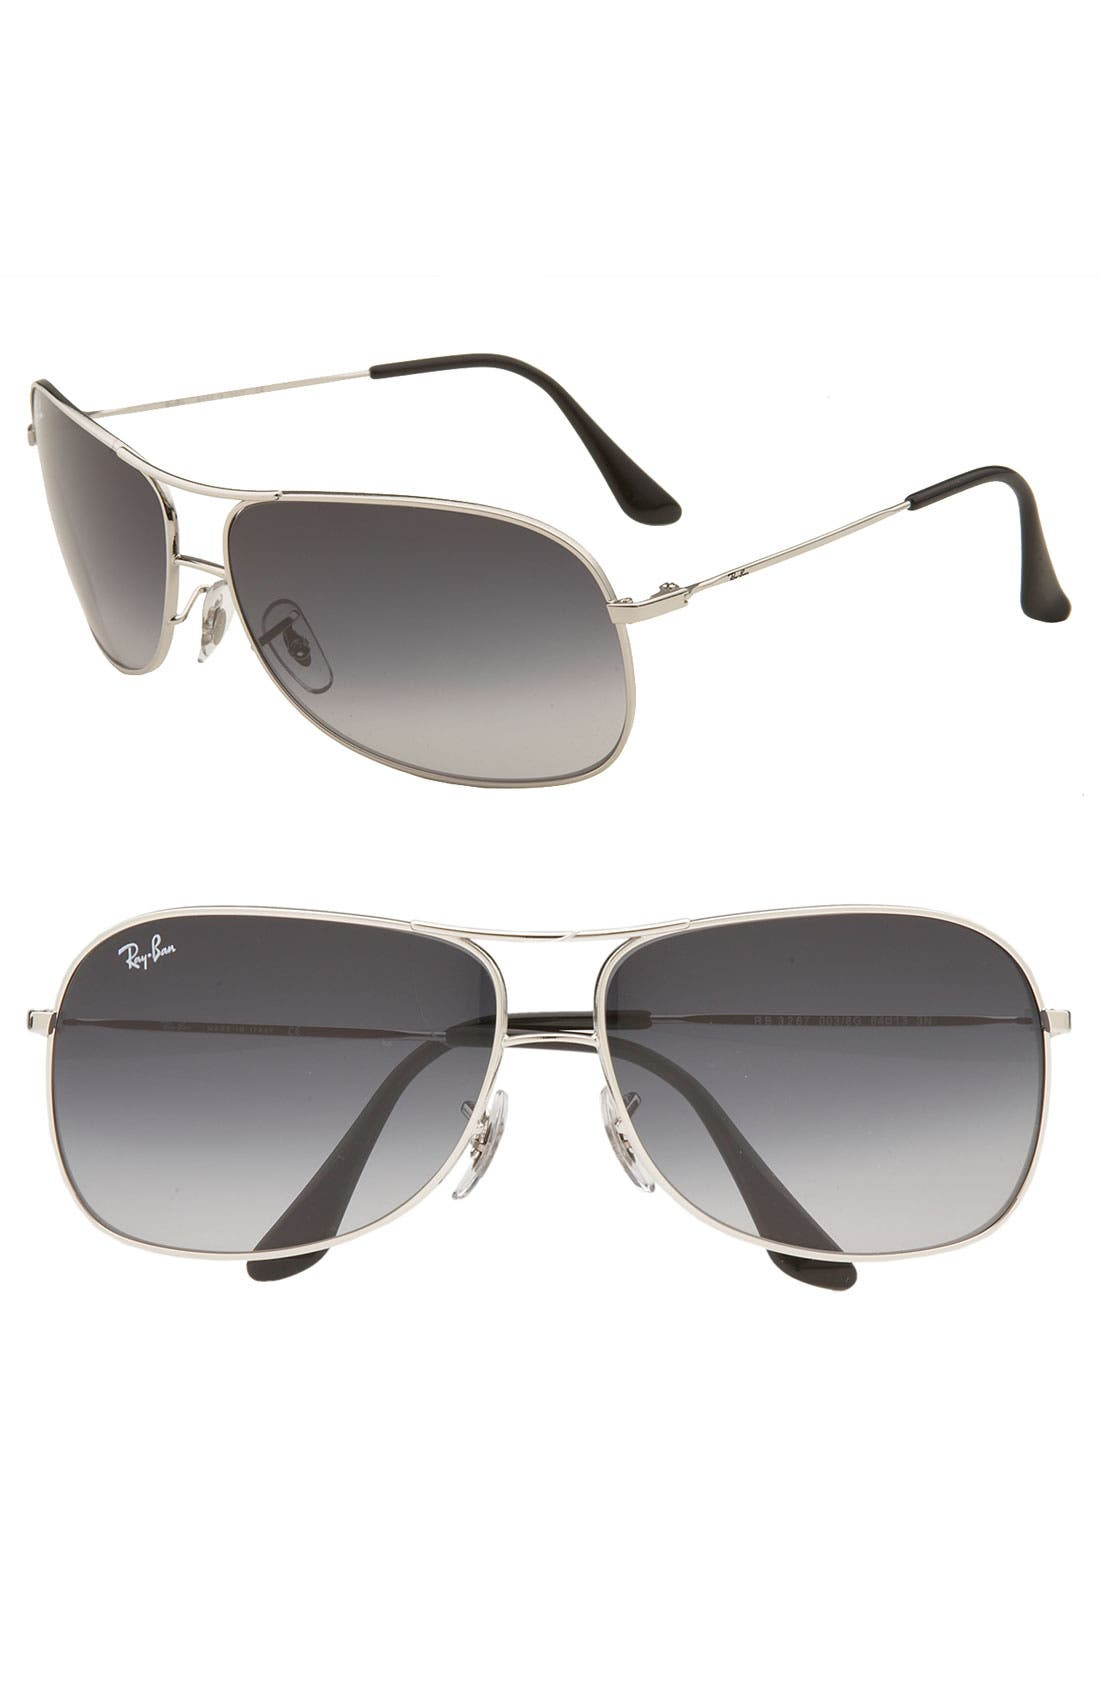 Alternate Image 1 Selected - Ray-Ban Square 64mm Wrap Aviator Sunglasses